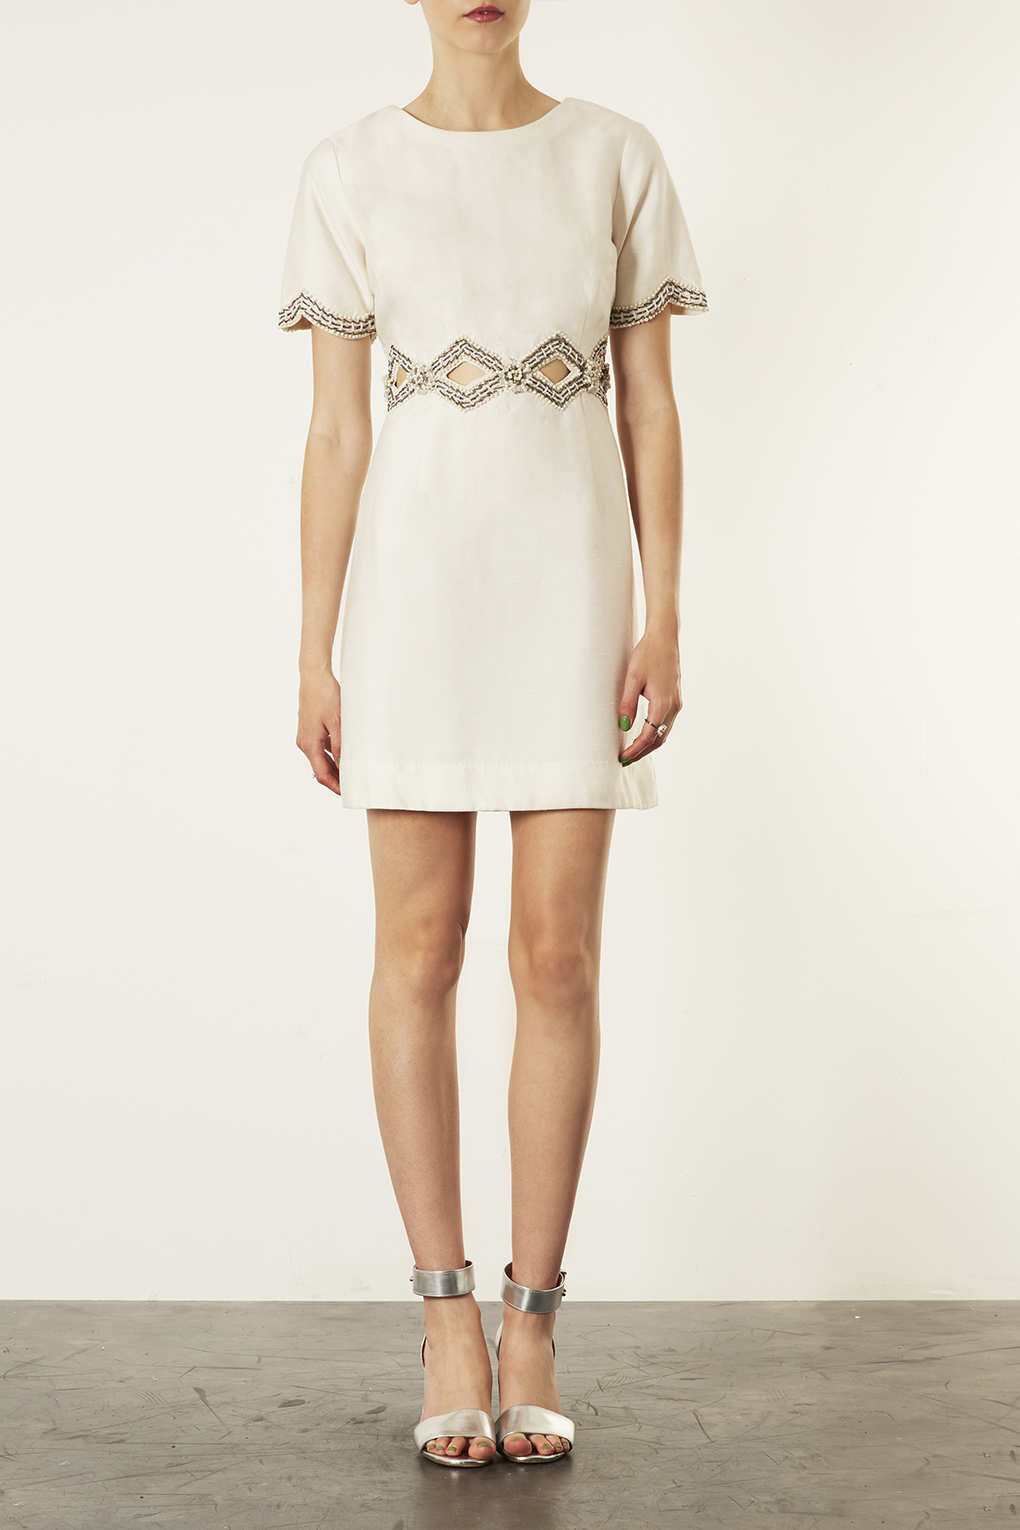 TOPSHOP LIMITED EDITION CREAM CUT OUT EMBELLISHED 60S SHIFT DRESS 14 42 10